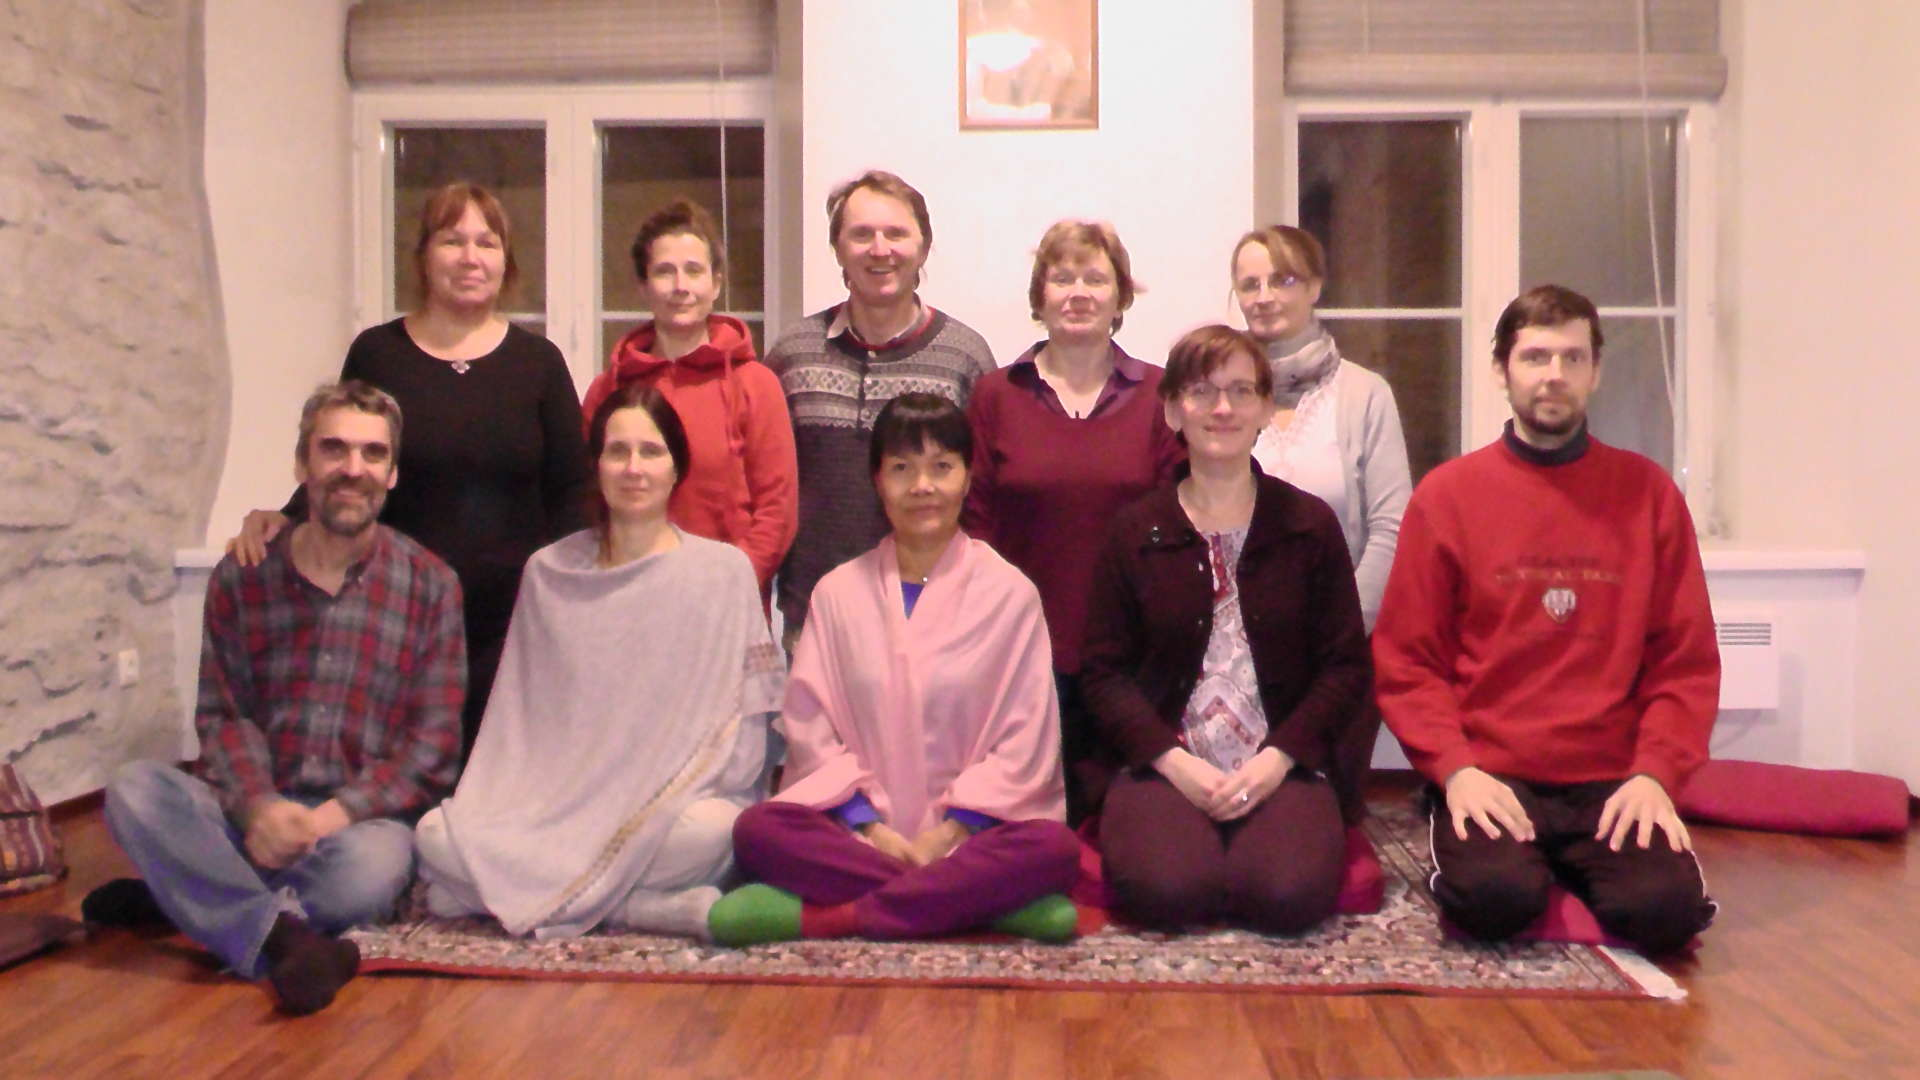 Kumbhaka weekend intensive with Oni McKinstry and Maaja Zelmin in Tallinn, Estonia, November 19-20, 2016